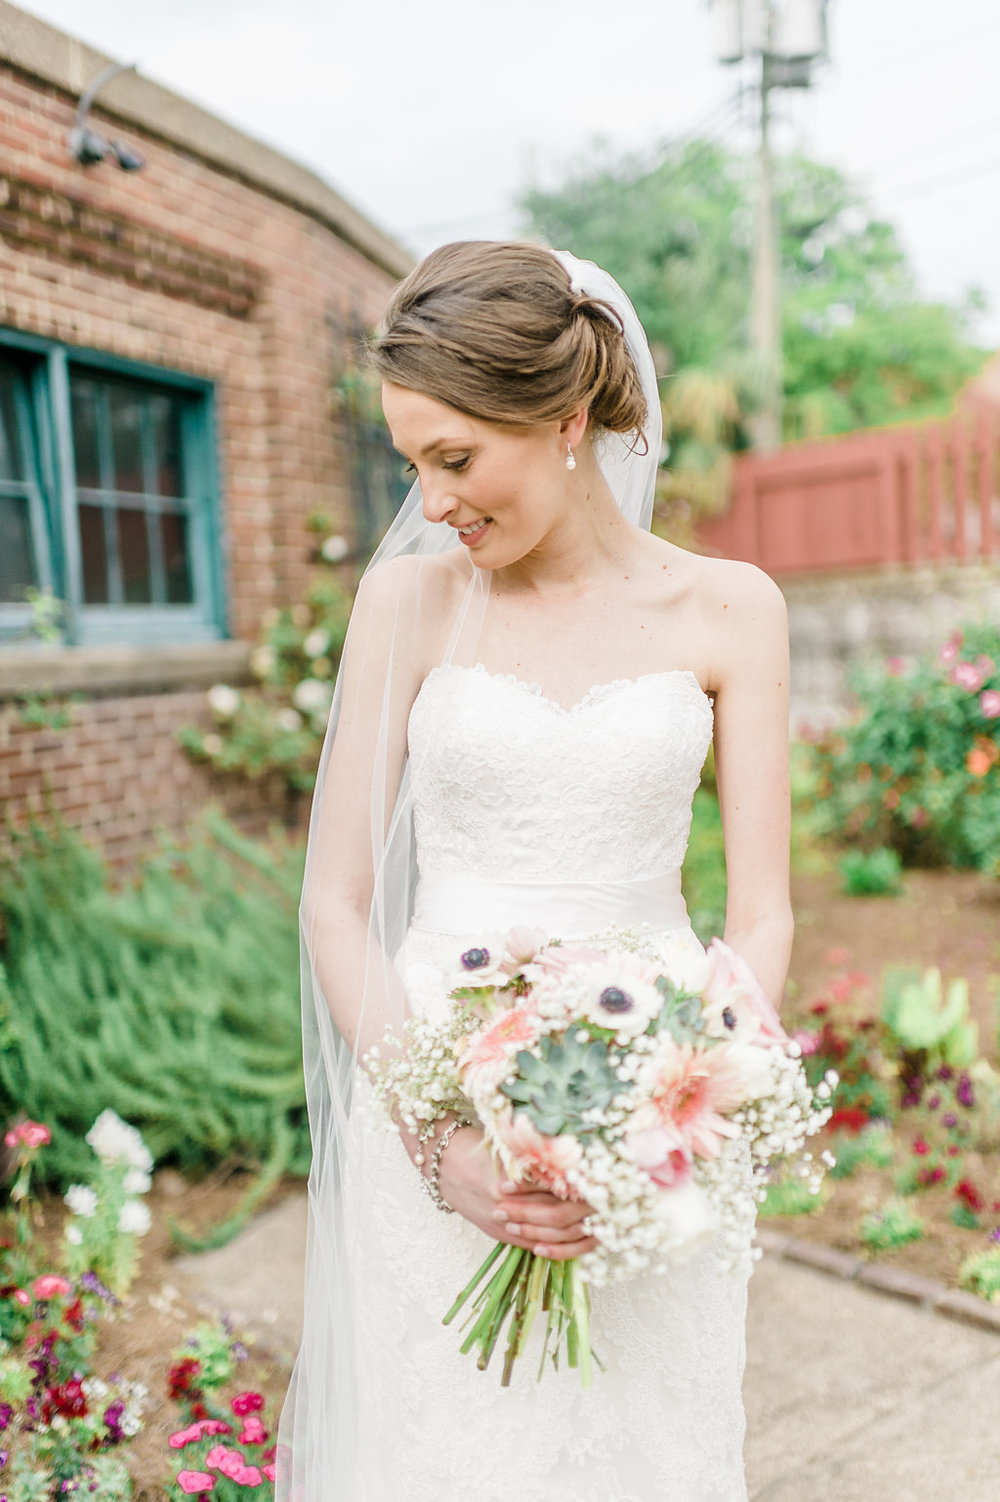 rach-lea-photography-rach-loves-troy-roundhouse-railroad-museum-wedding-ivory-and-beau-savannah-wedding-planner-savannah-weddings-savannah-florist-ivory-and-beau-bridal-boutique-succulent-blush-wedding-20.jpg